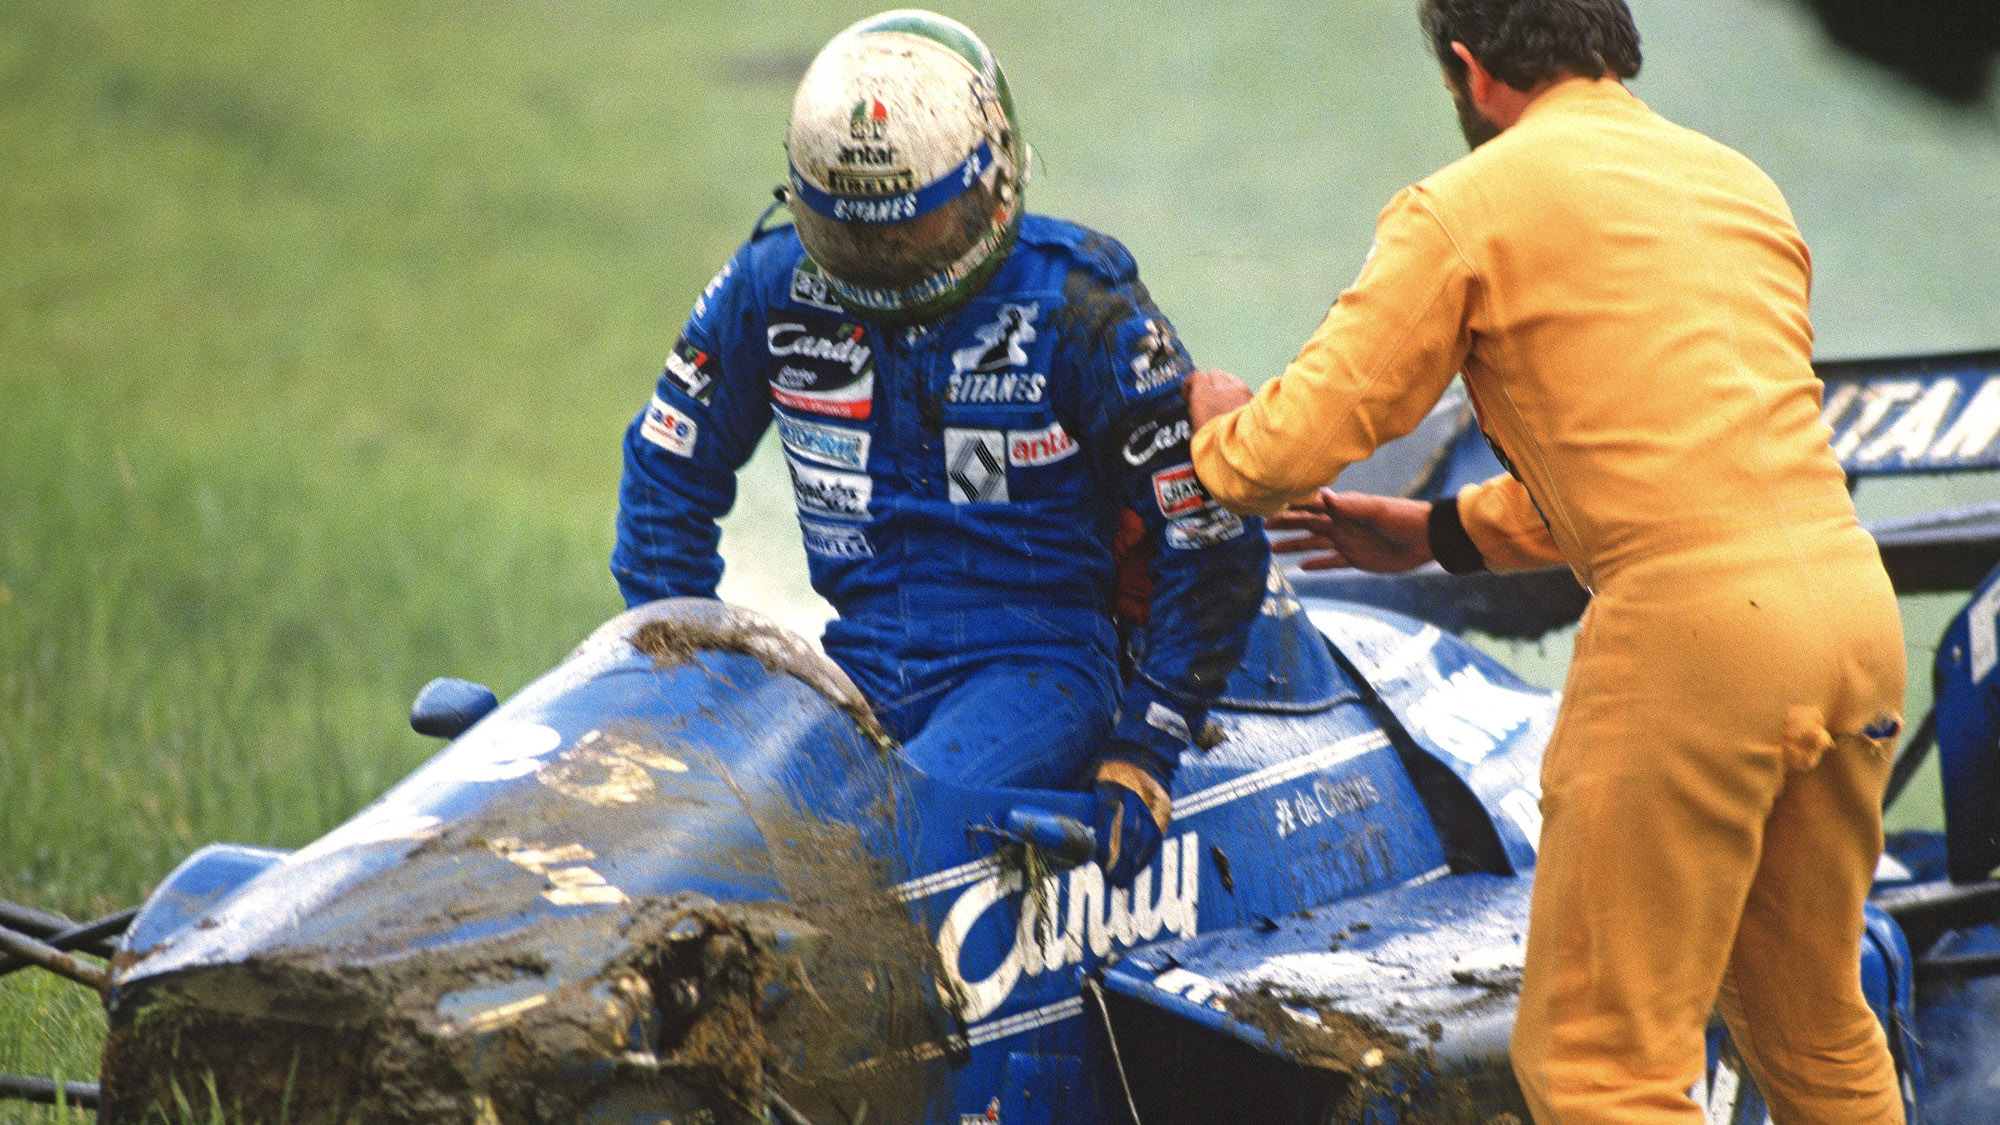 Andrea de Cesaris gets out of his Ligier after crashing in the 1985 Austrian Grand Prix